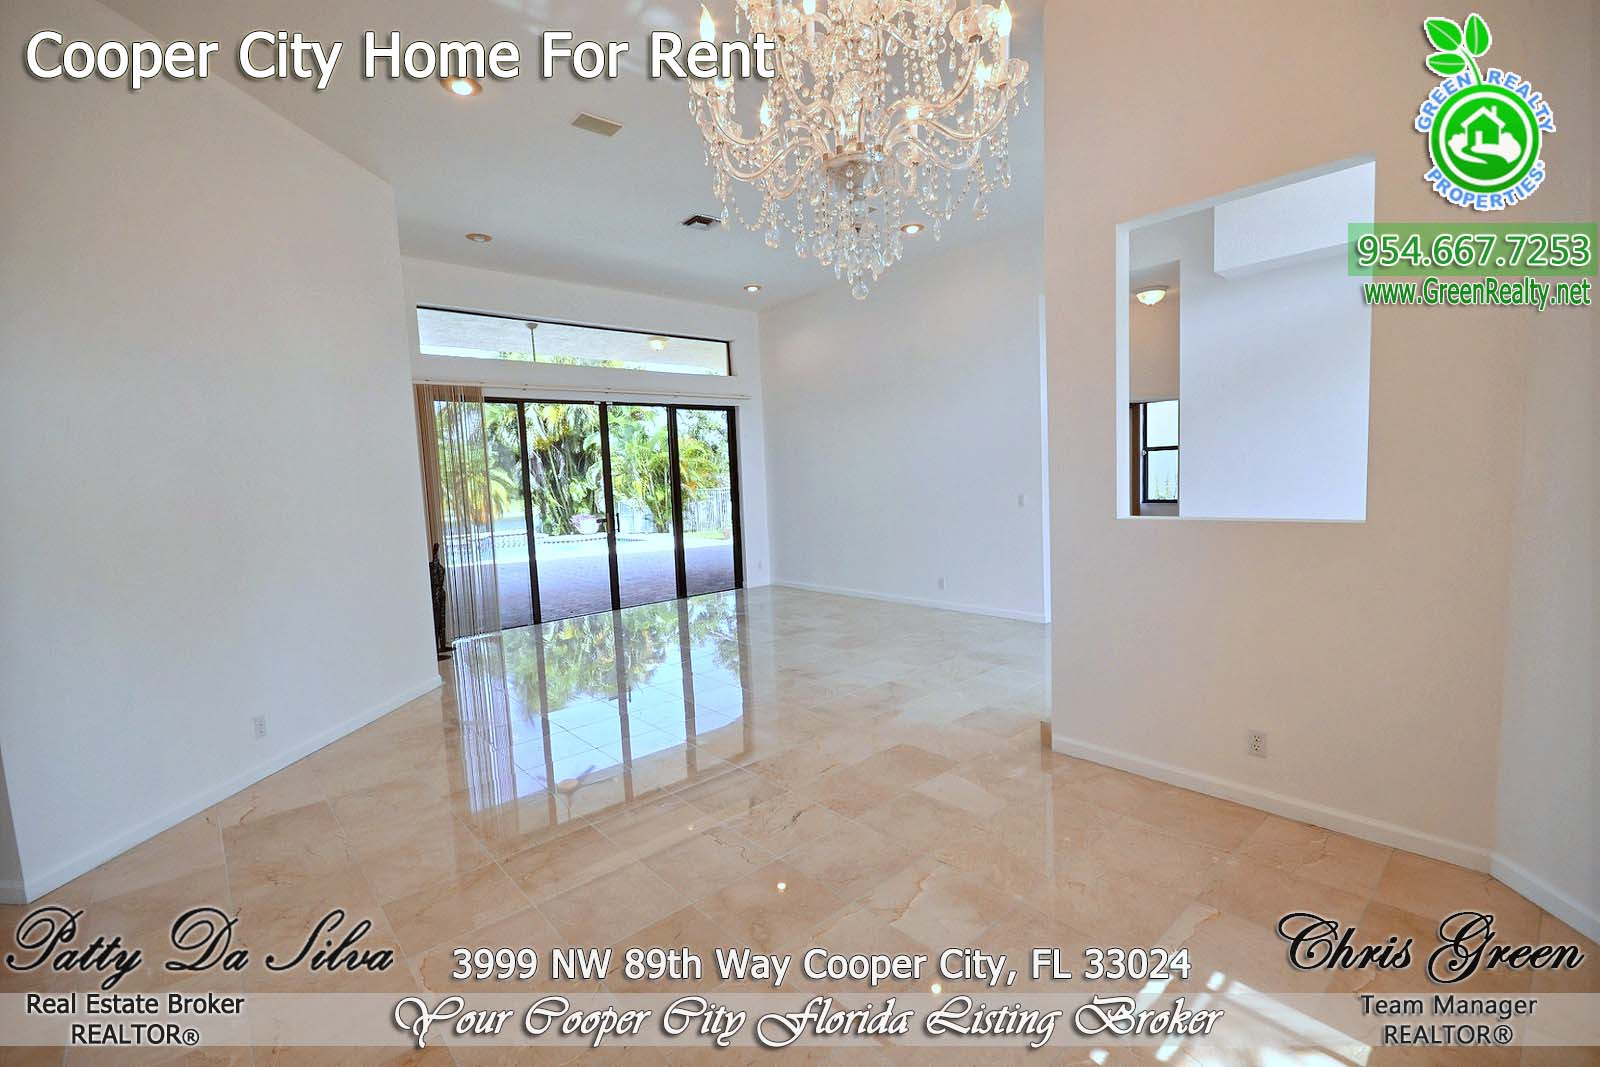 24 Homes For Rent in Cooper City (3)